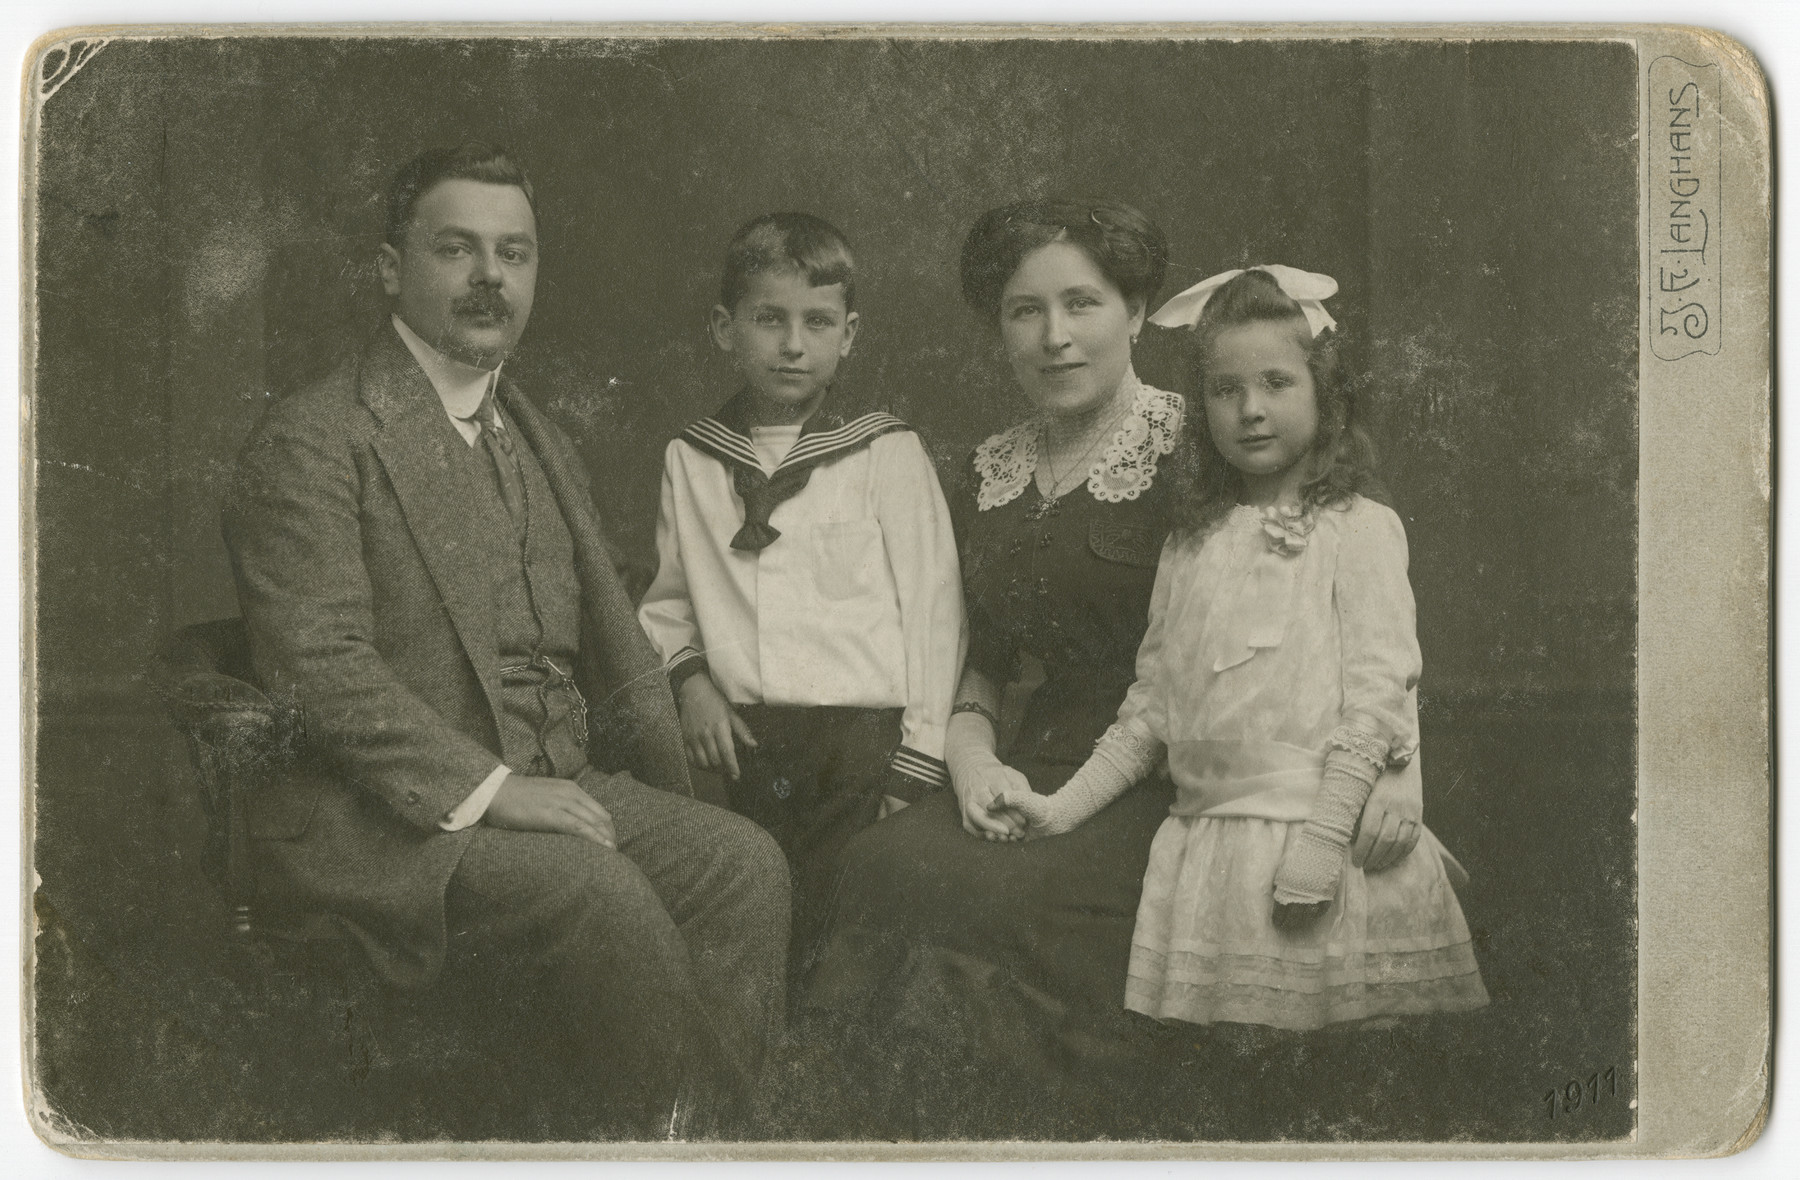 Studio portrait of the Eisenstein family.  From left to right are Otto, George, Matilda and Vilma Eisenstein.  All four perished in the Holocaust.